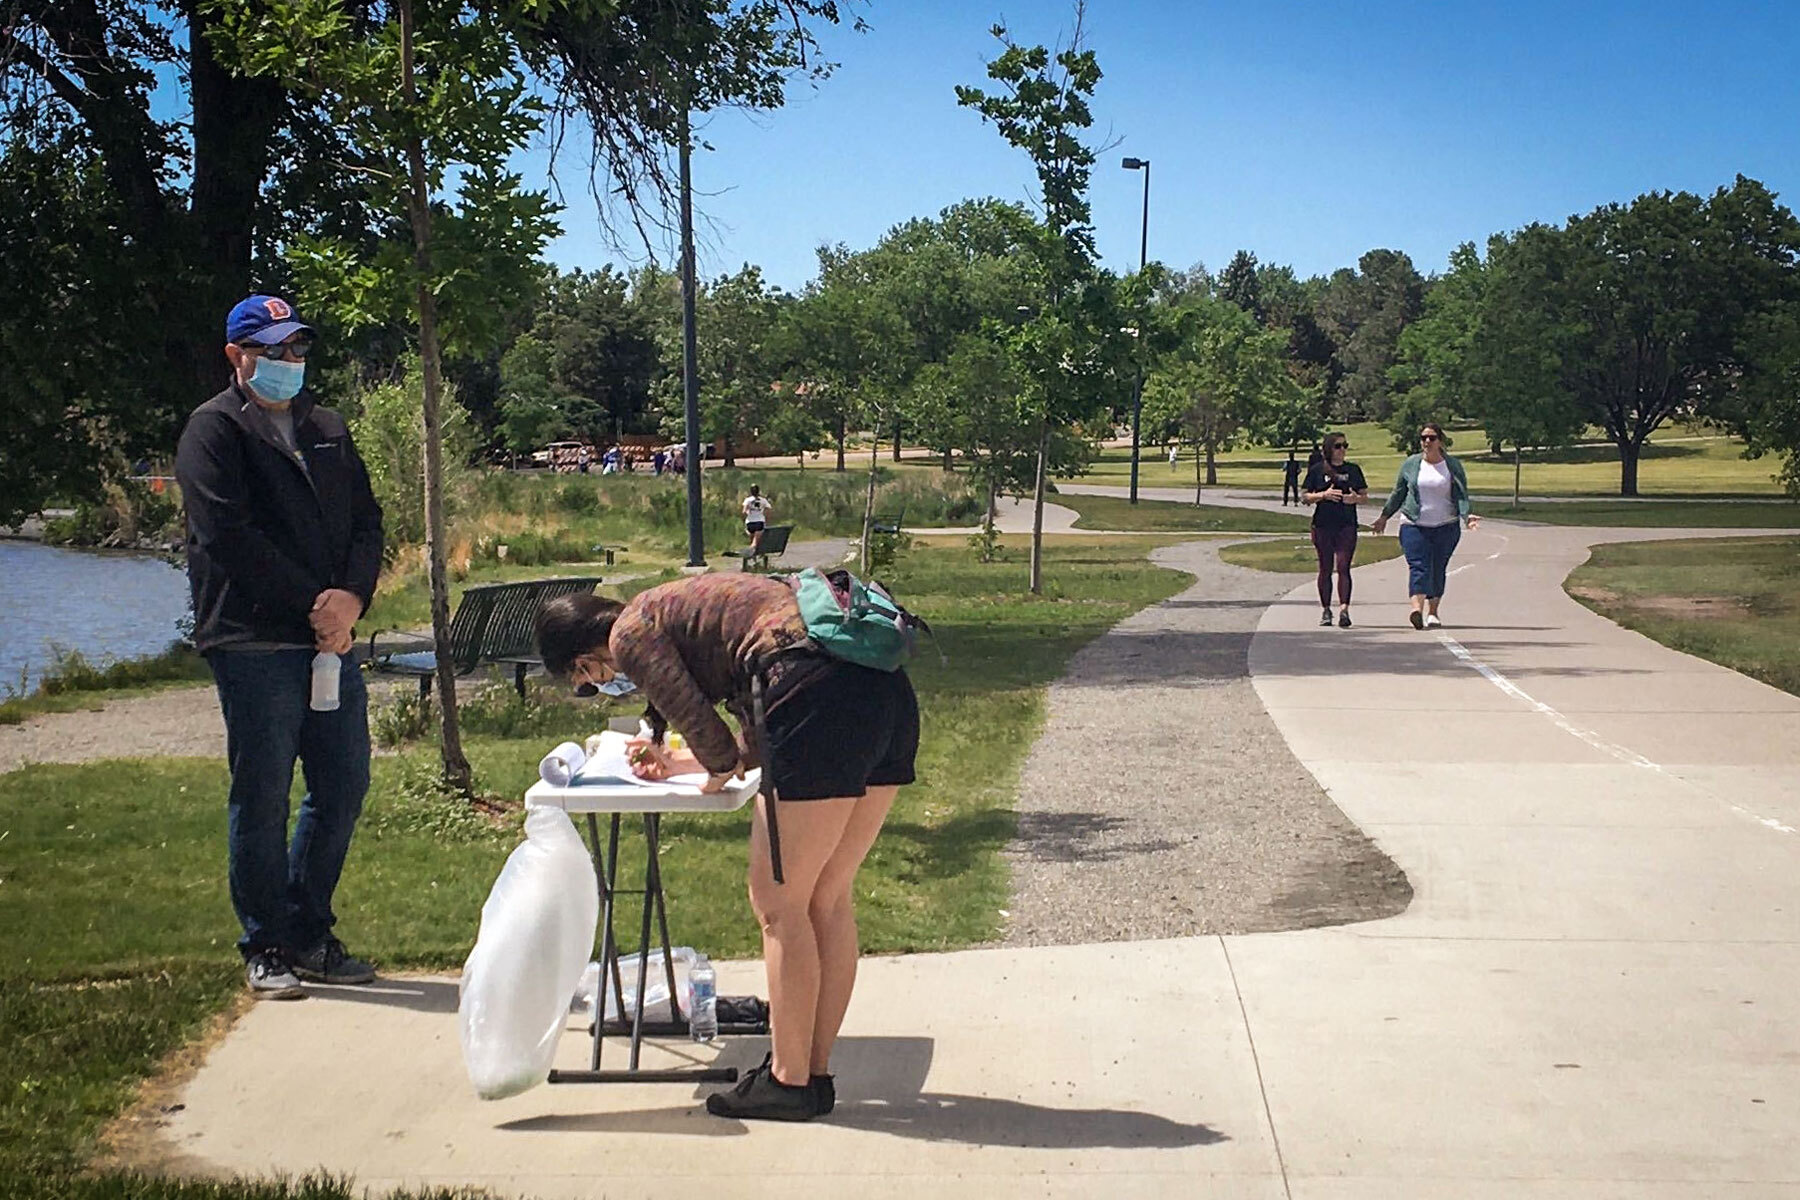 A petition circulator collects signatures at Denver's Sloan's Lake for a paid family leave measure that progressive groups hope to get on the ballot this November.